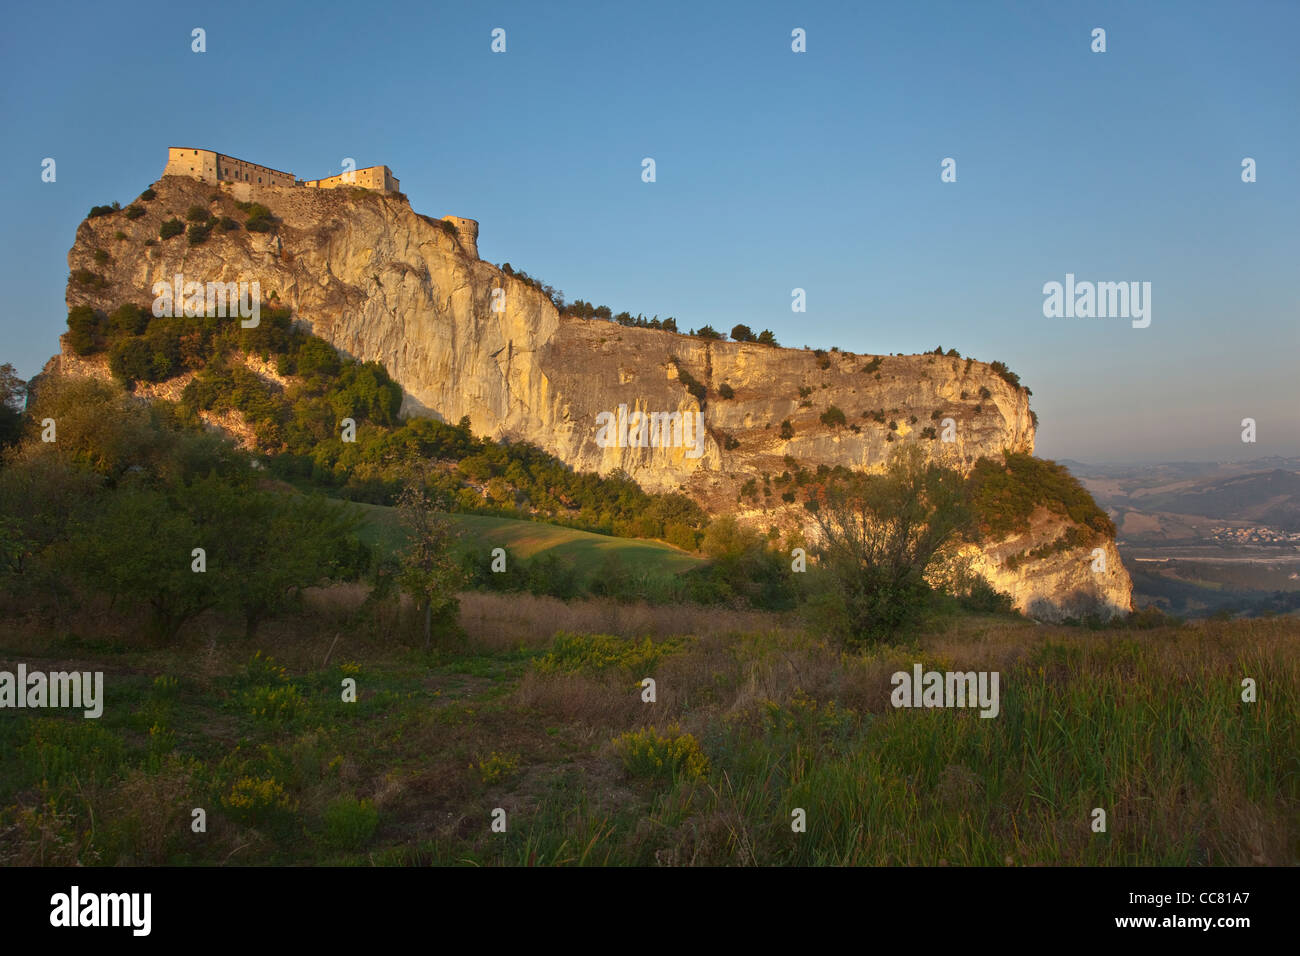 The Fortress, a castle on rocky crag, at sunrise at village of San Leo, Emilia-Romagna, Italy, AGPix_1992 - Stock Image